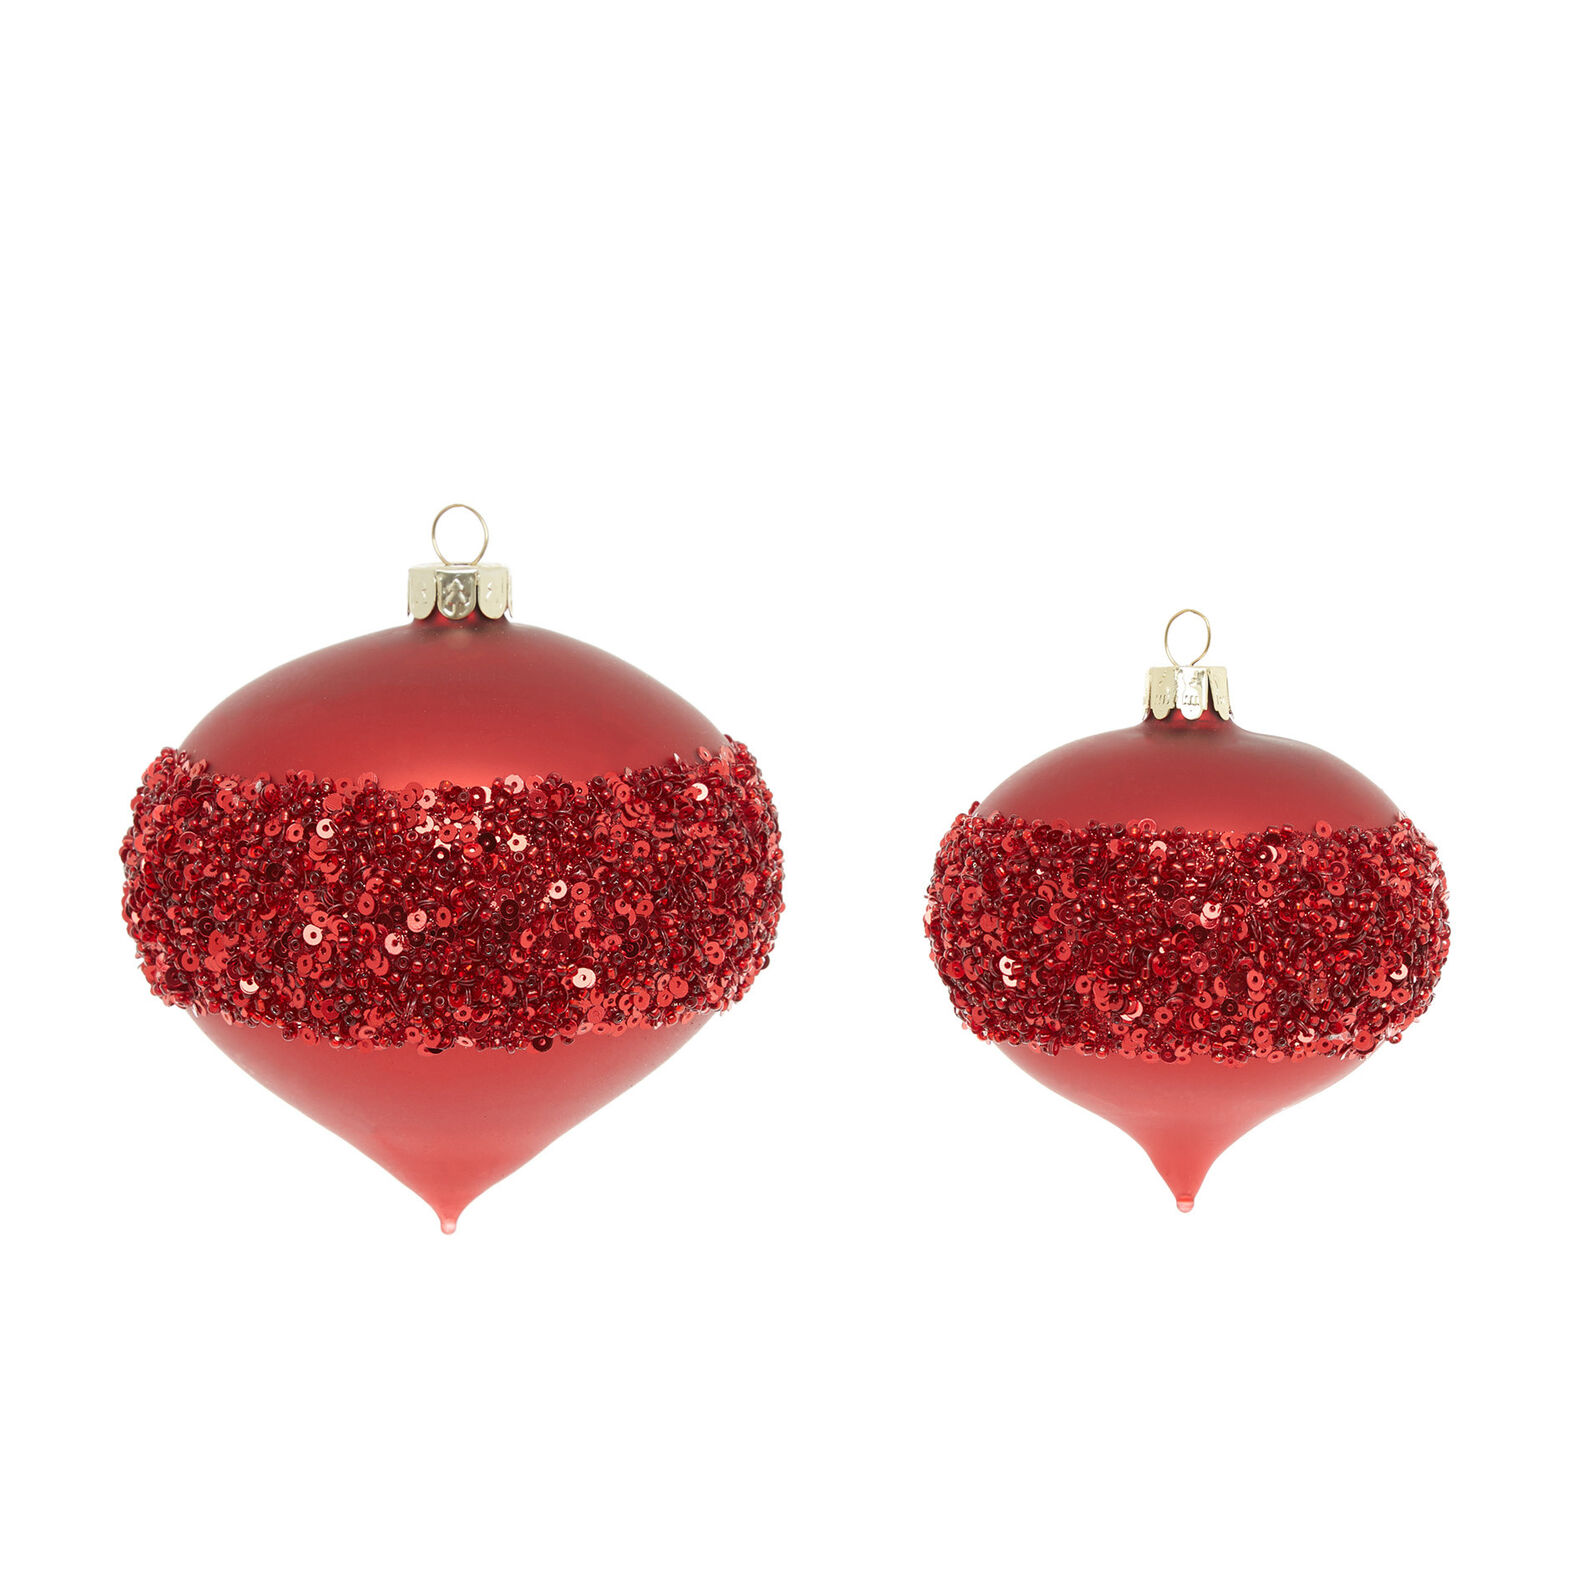 Hand-decorated onion bauble with glitter band D8cm